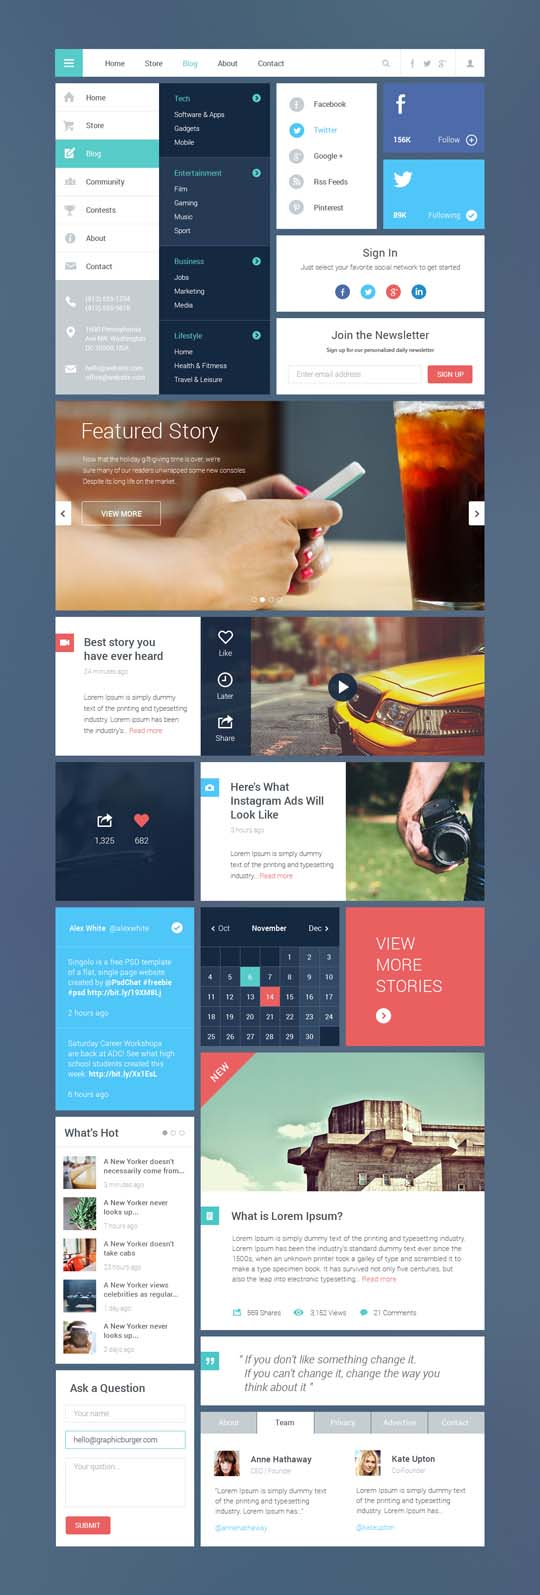 Blog-Magazine-UI-Kit-2-Full